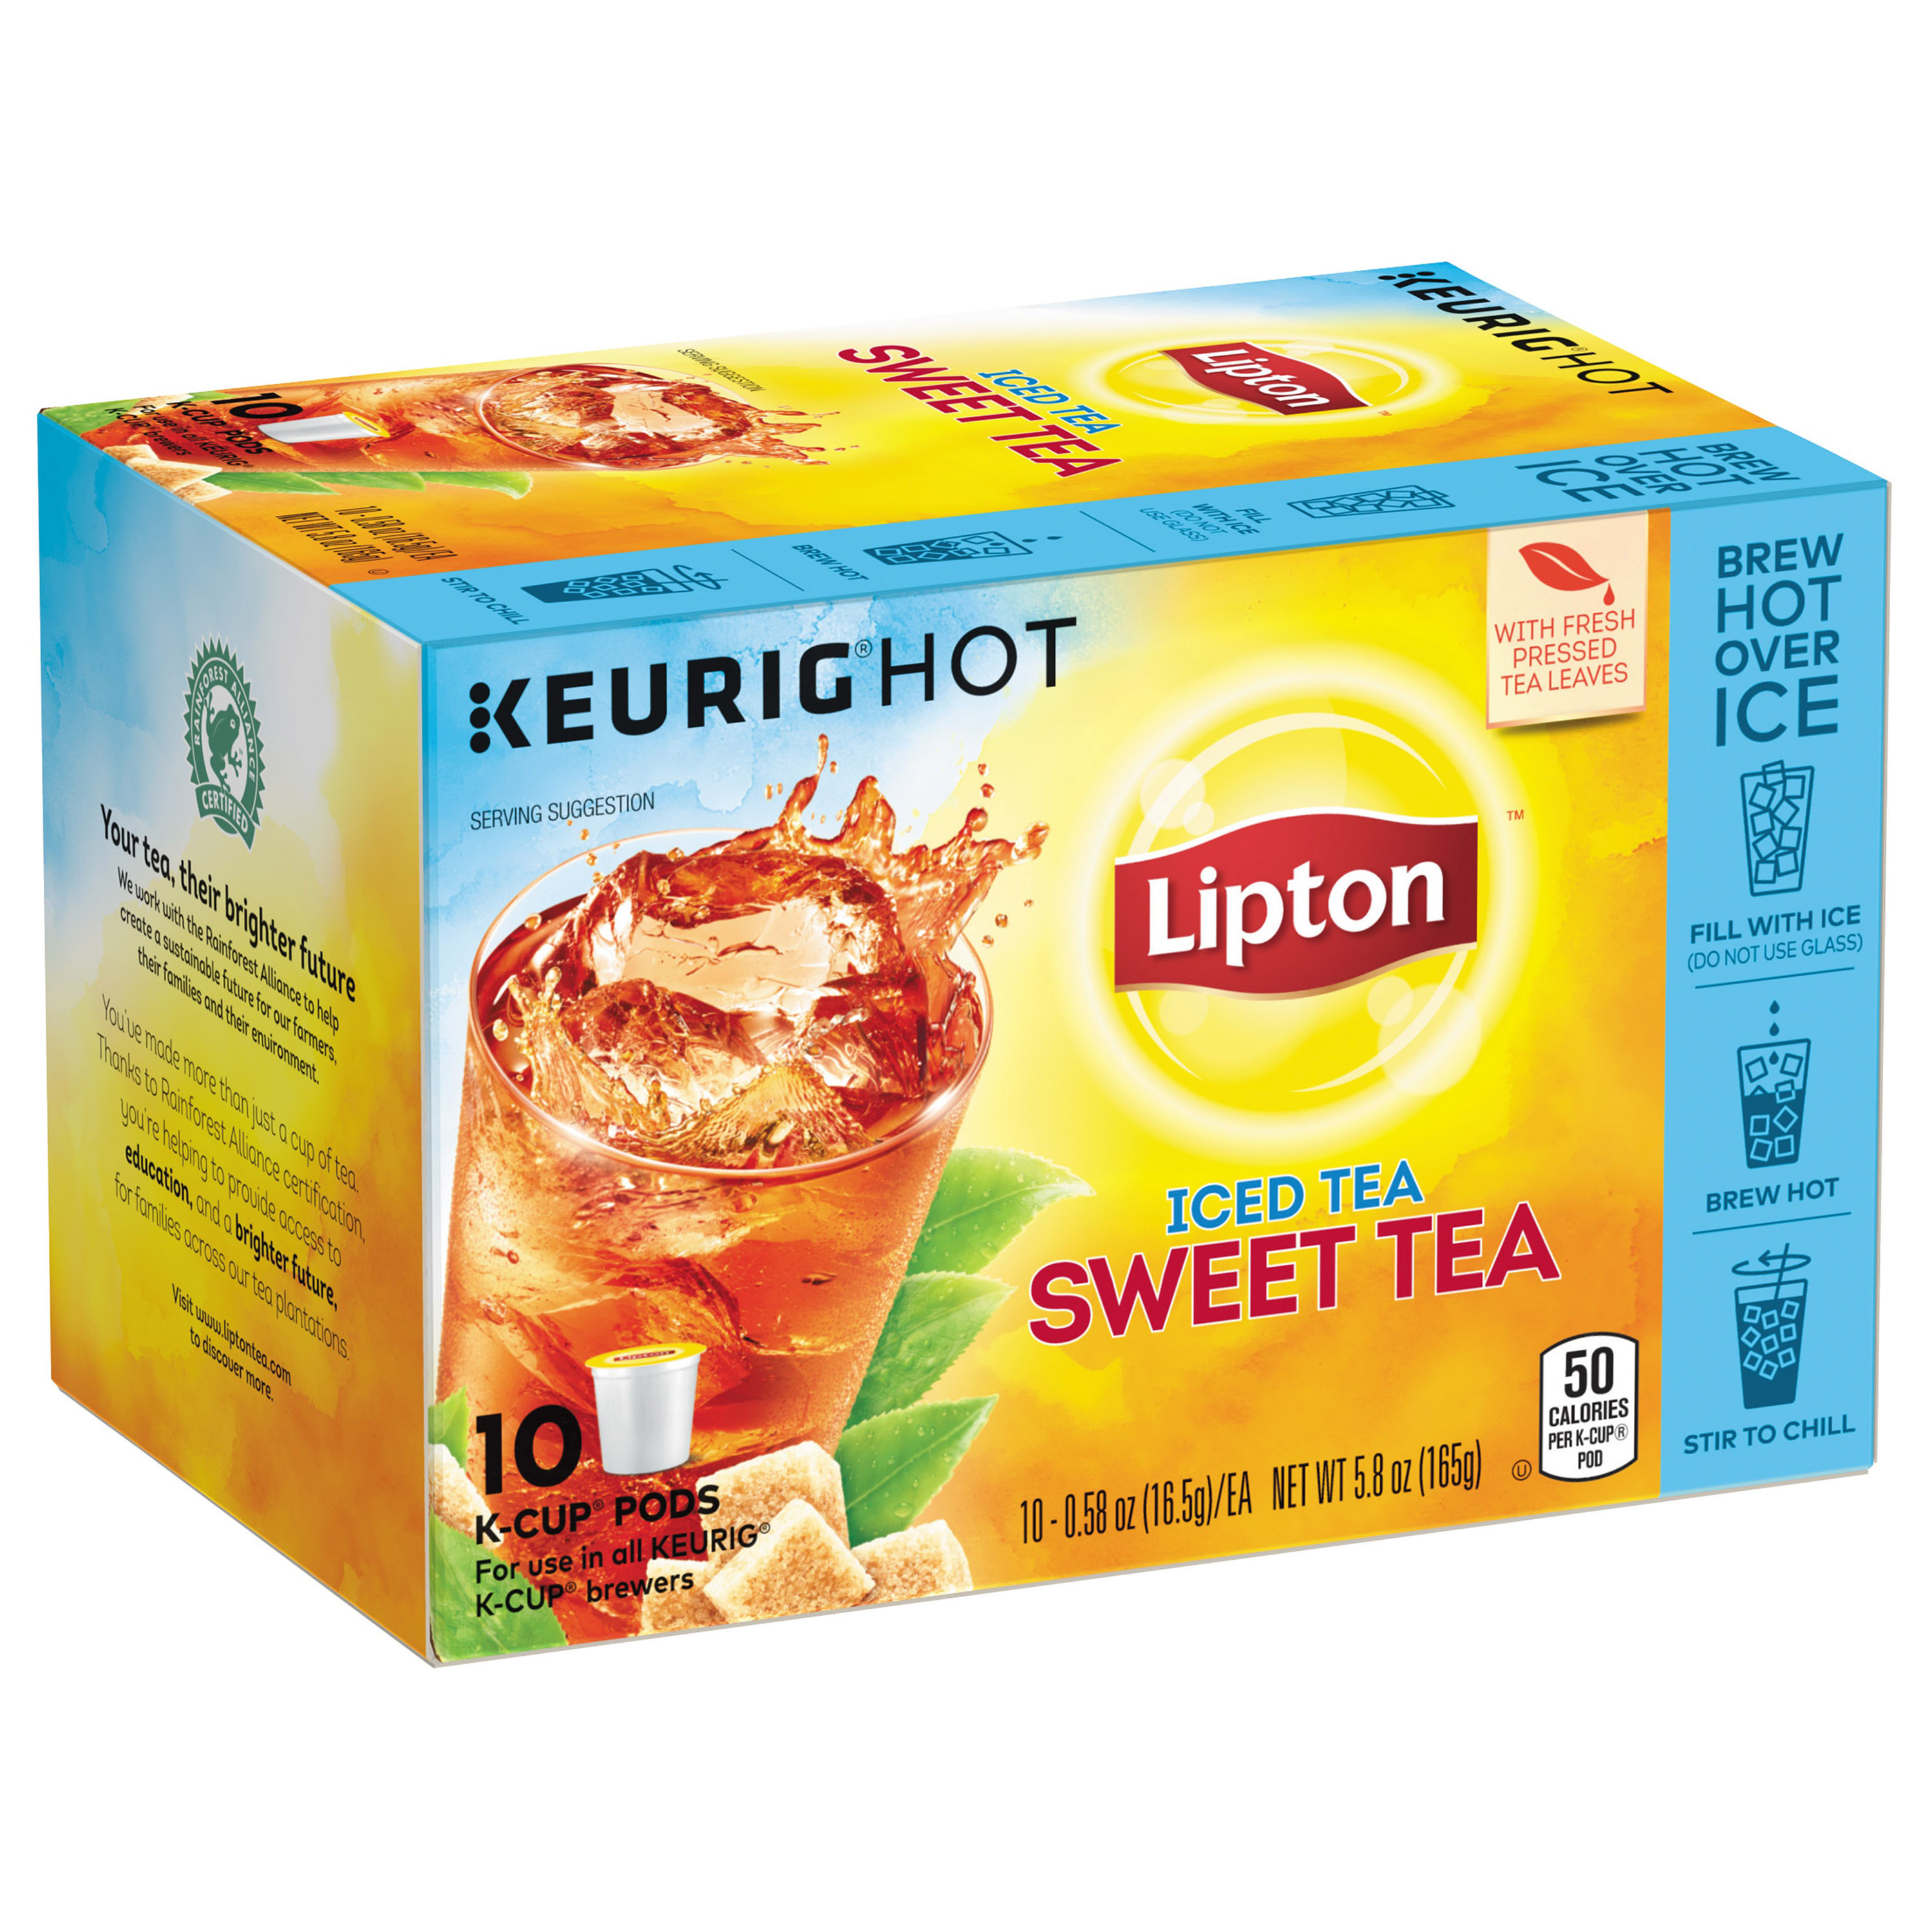 Lipton Sweet Tea K Cups Pods Iced Black Tea, 10 ct